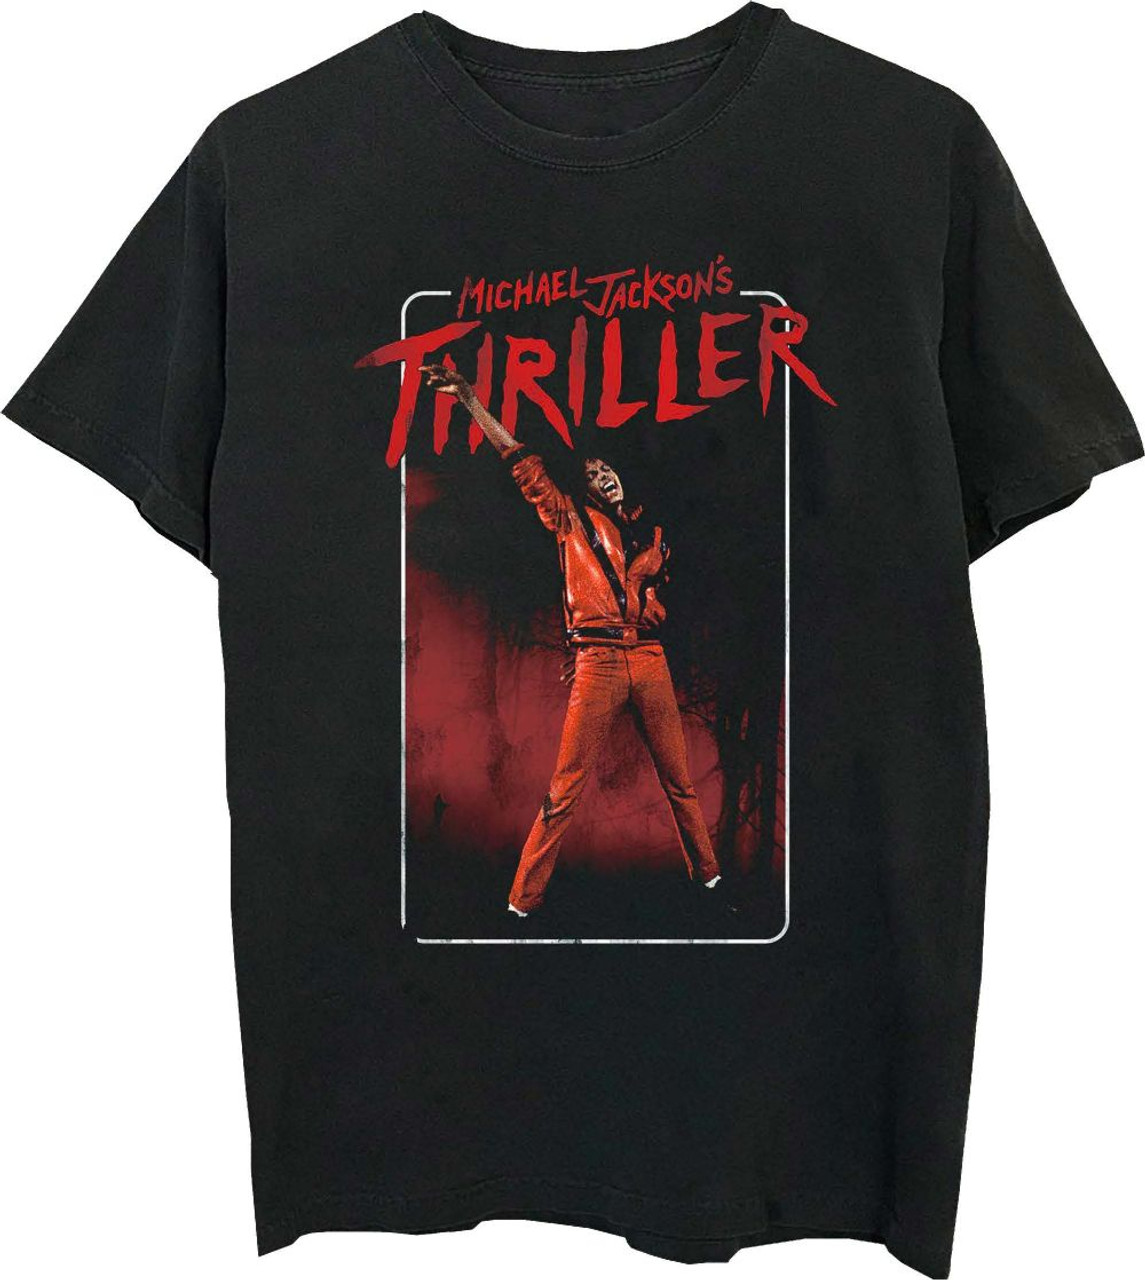 8305ea1c2f Michael Jackson T-shirt - Thriller Music Video | Men's Black Shirt